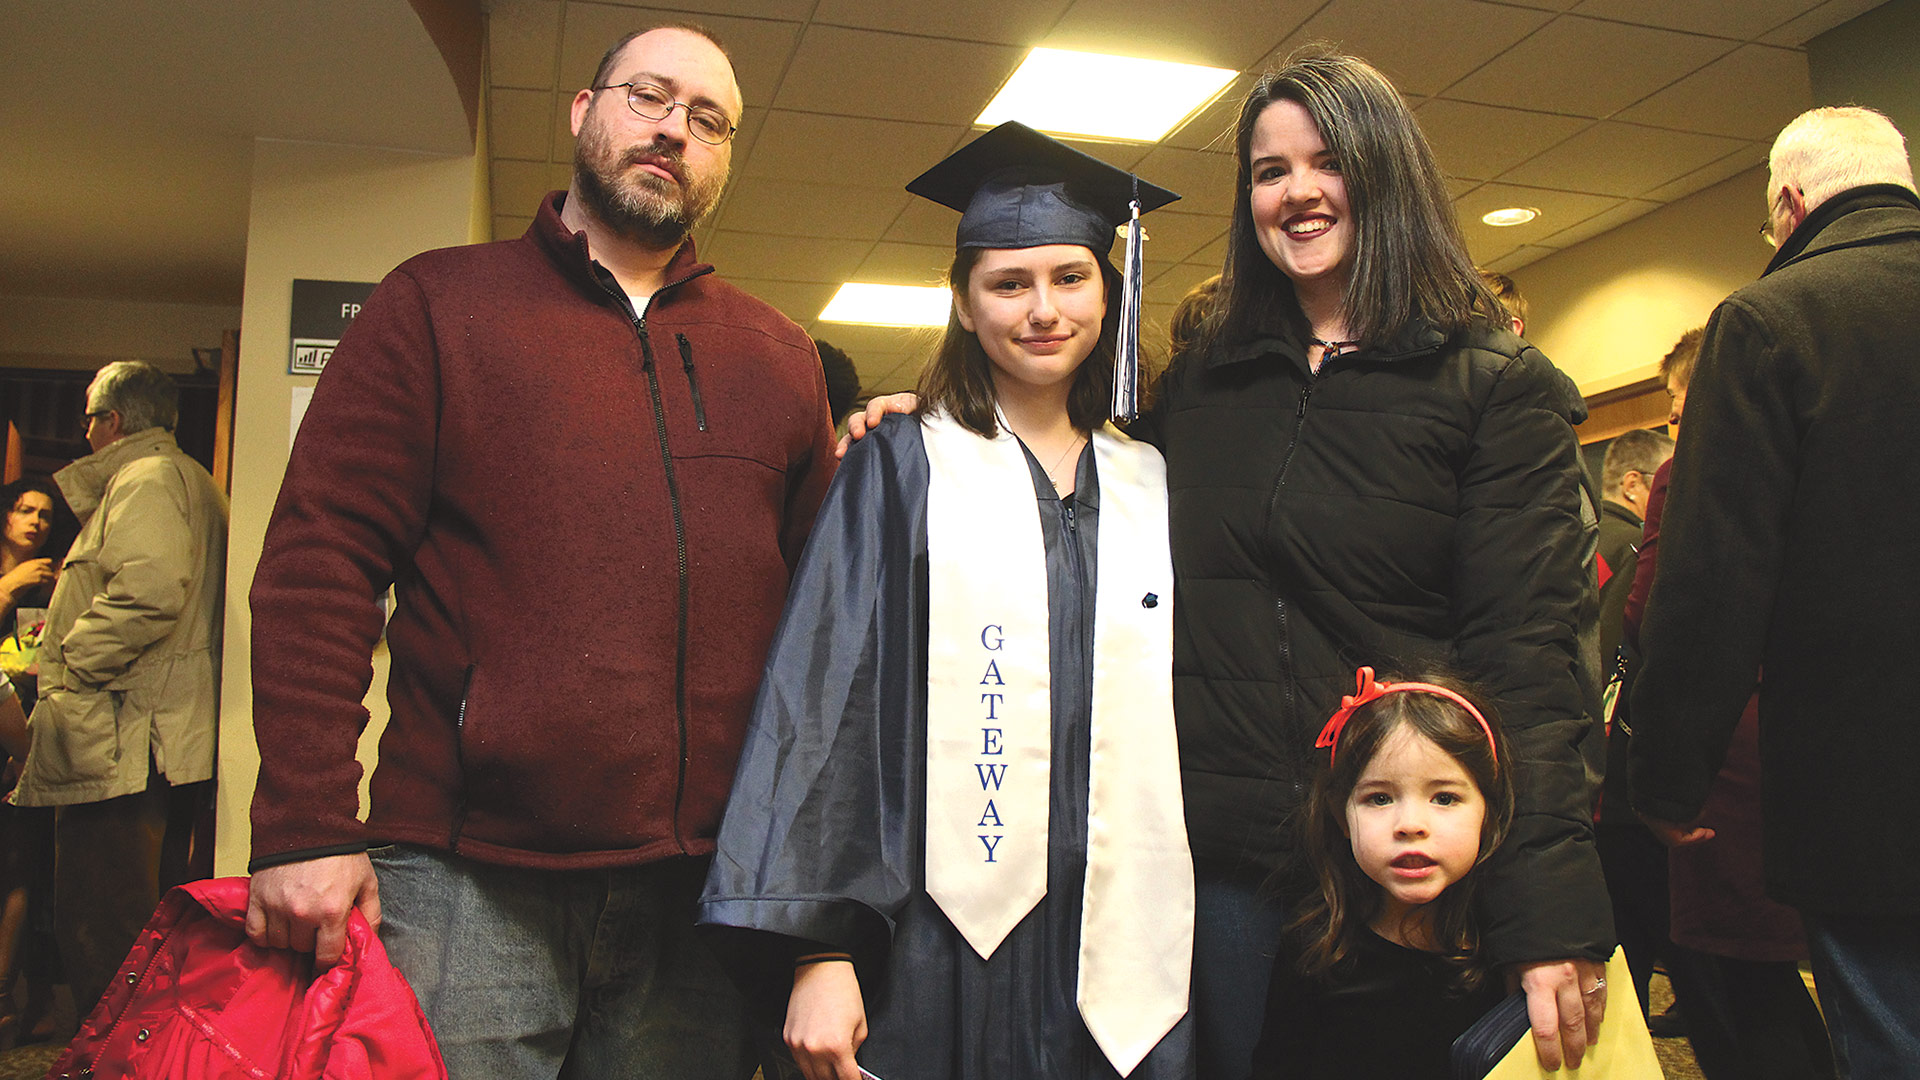 Biannca Colflesh of Holyoke, one of the 15 graduates, celebrates with her family after the graduation ceremony